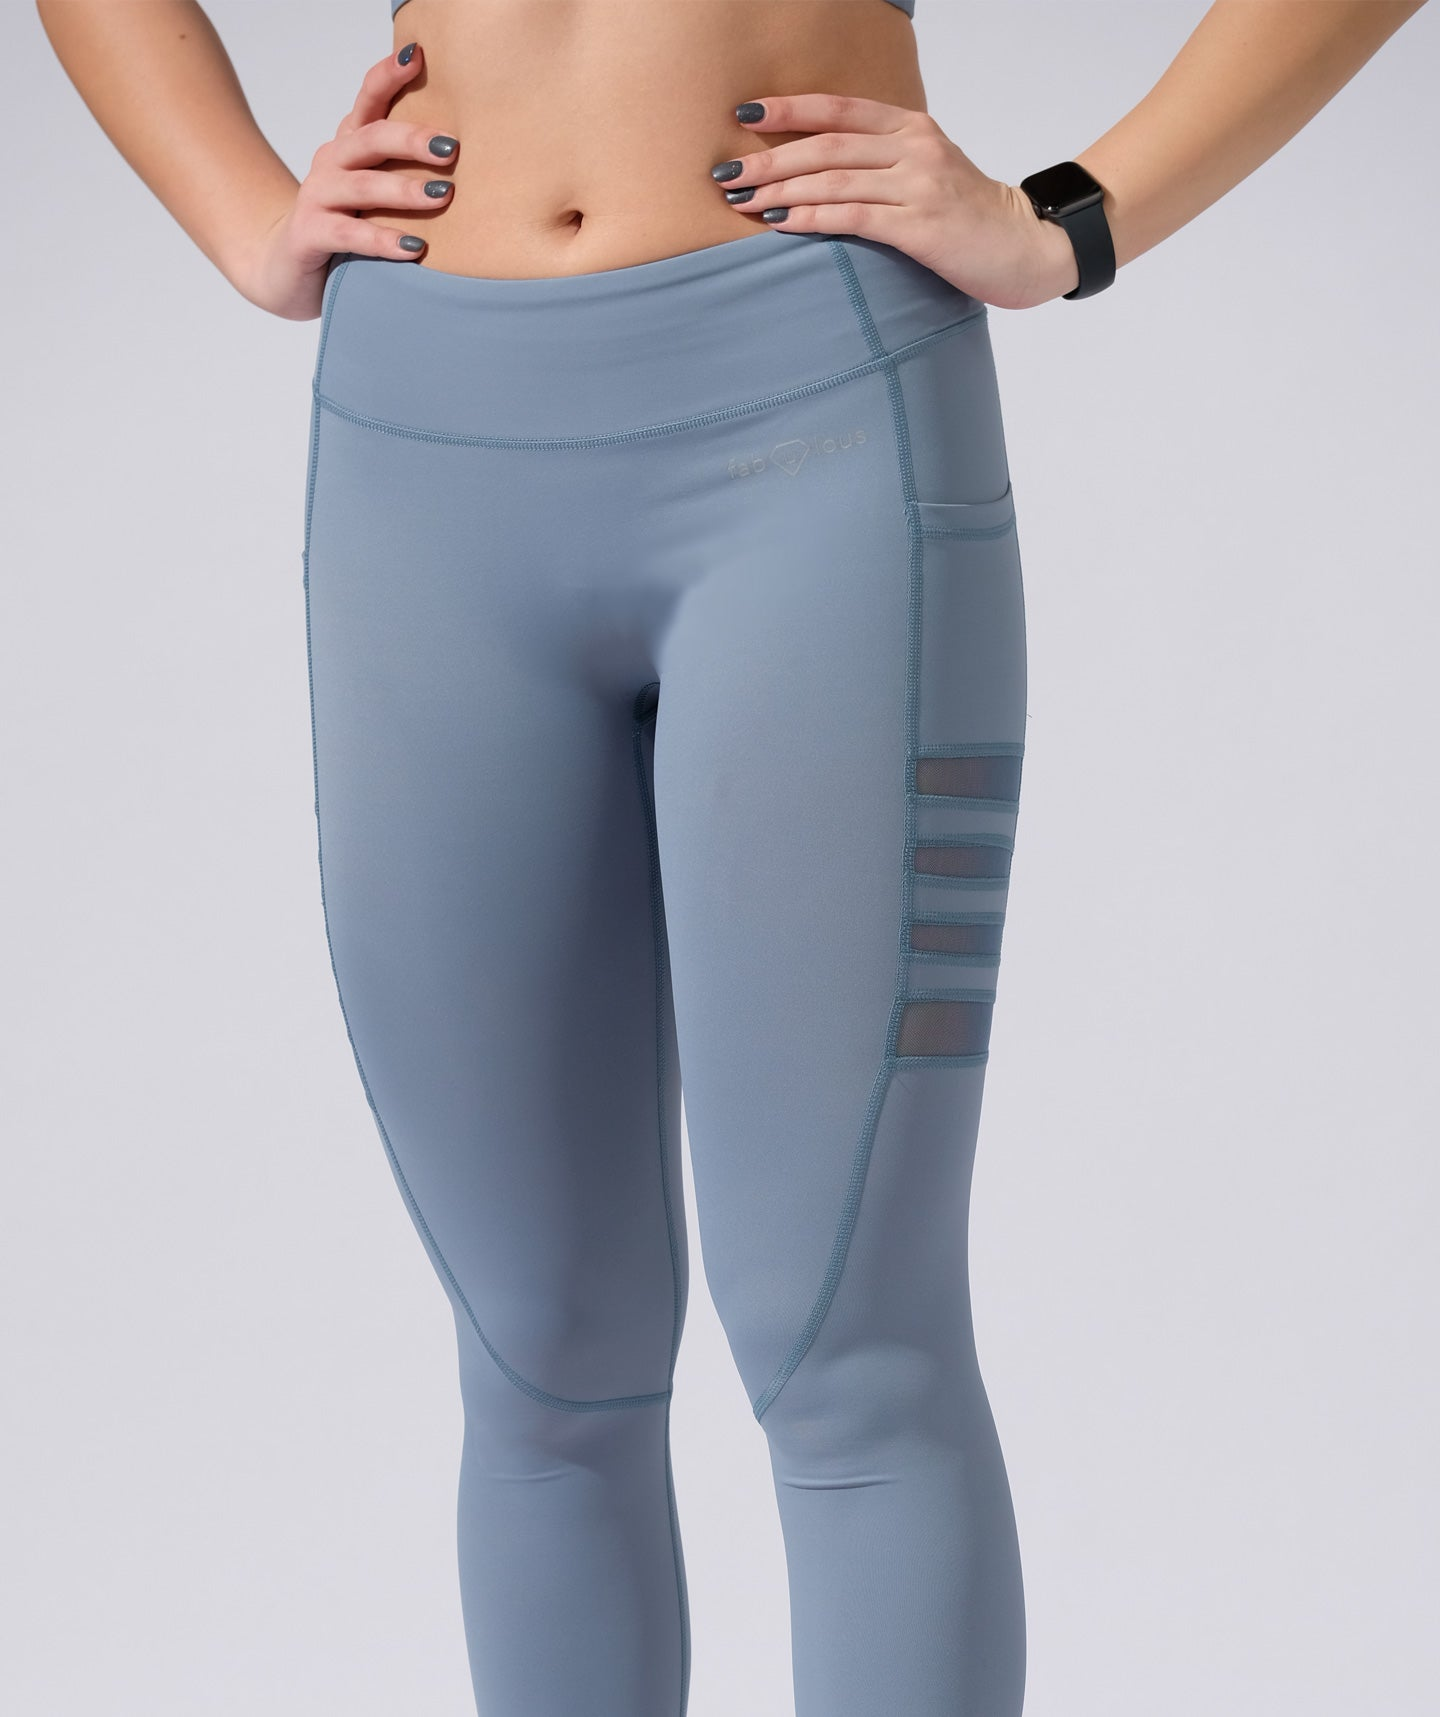 TechFit Leggings Blue